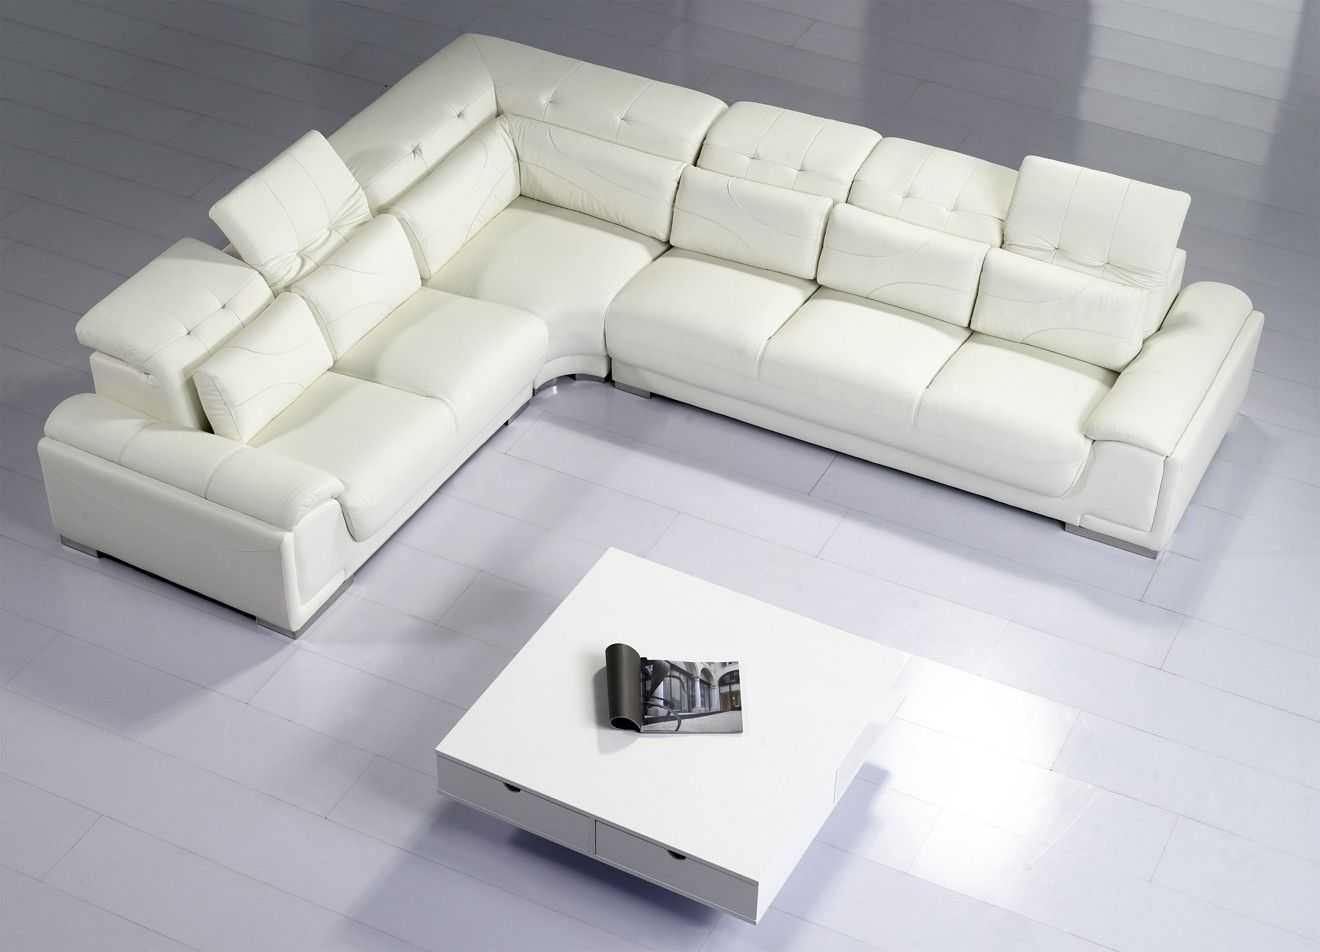 White Leather Couch Camellia White Leather Corner Sofa Suite For Details Visit Www